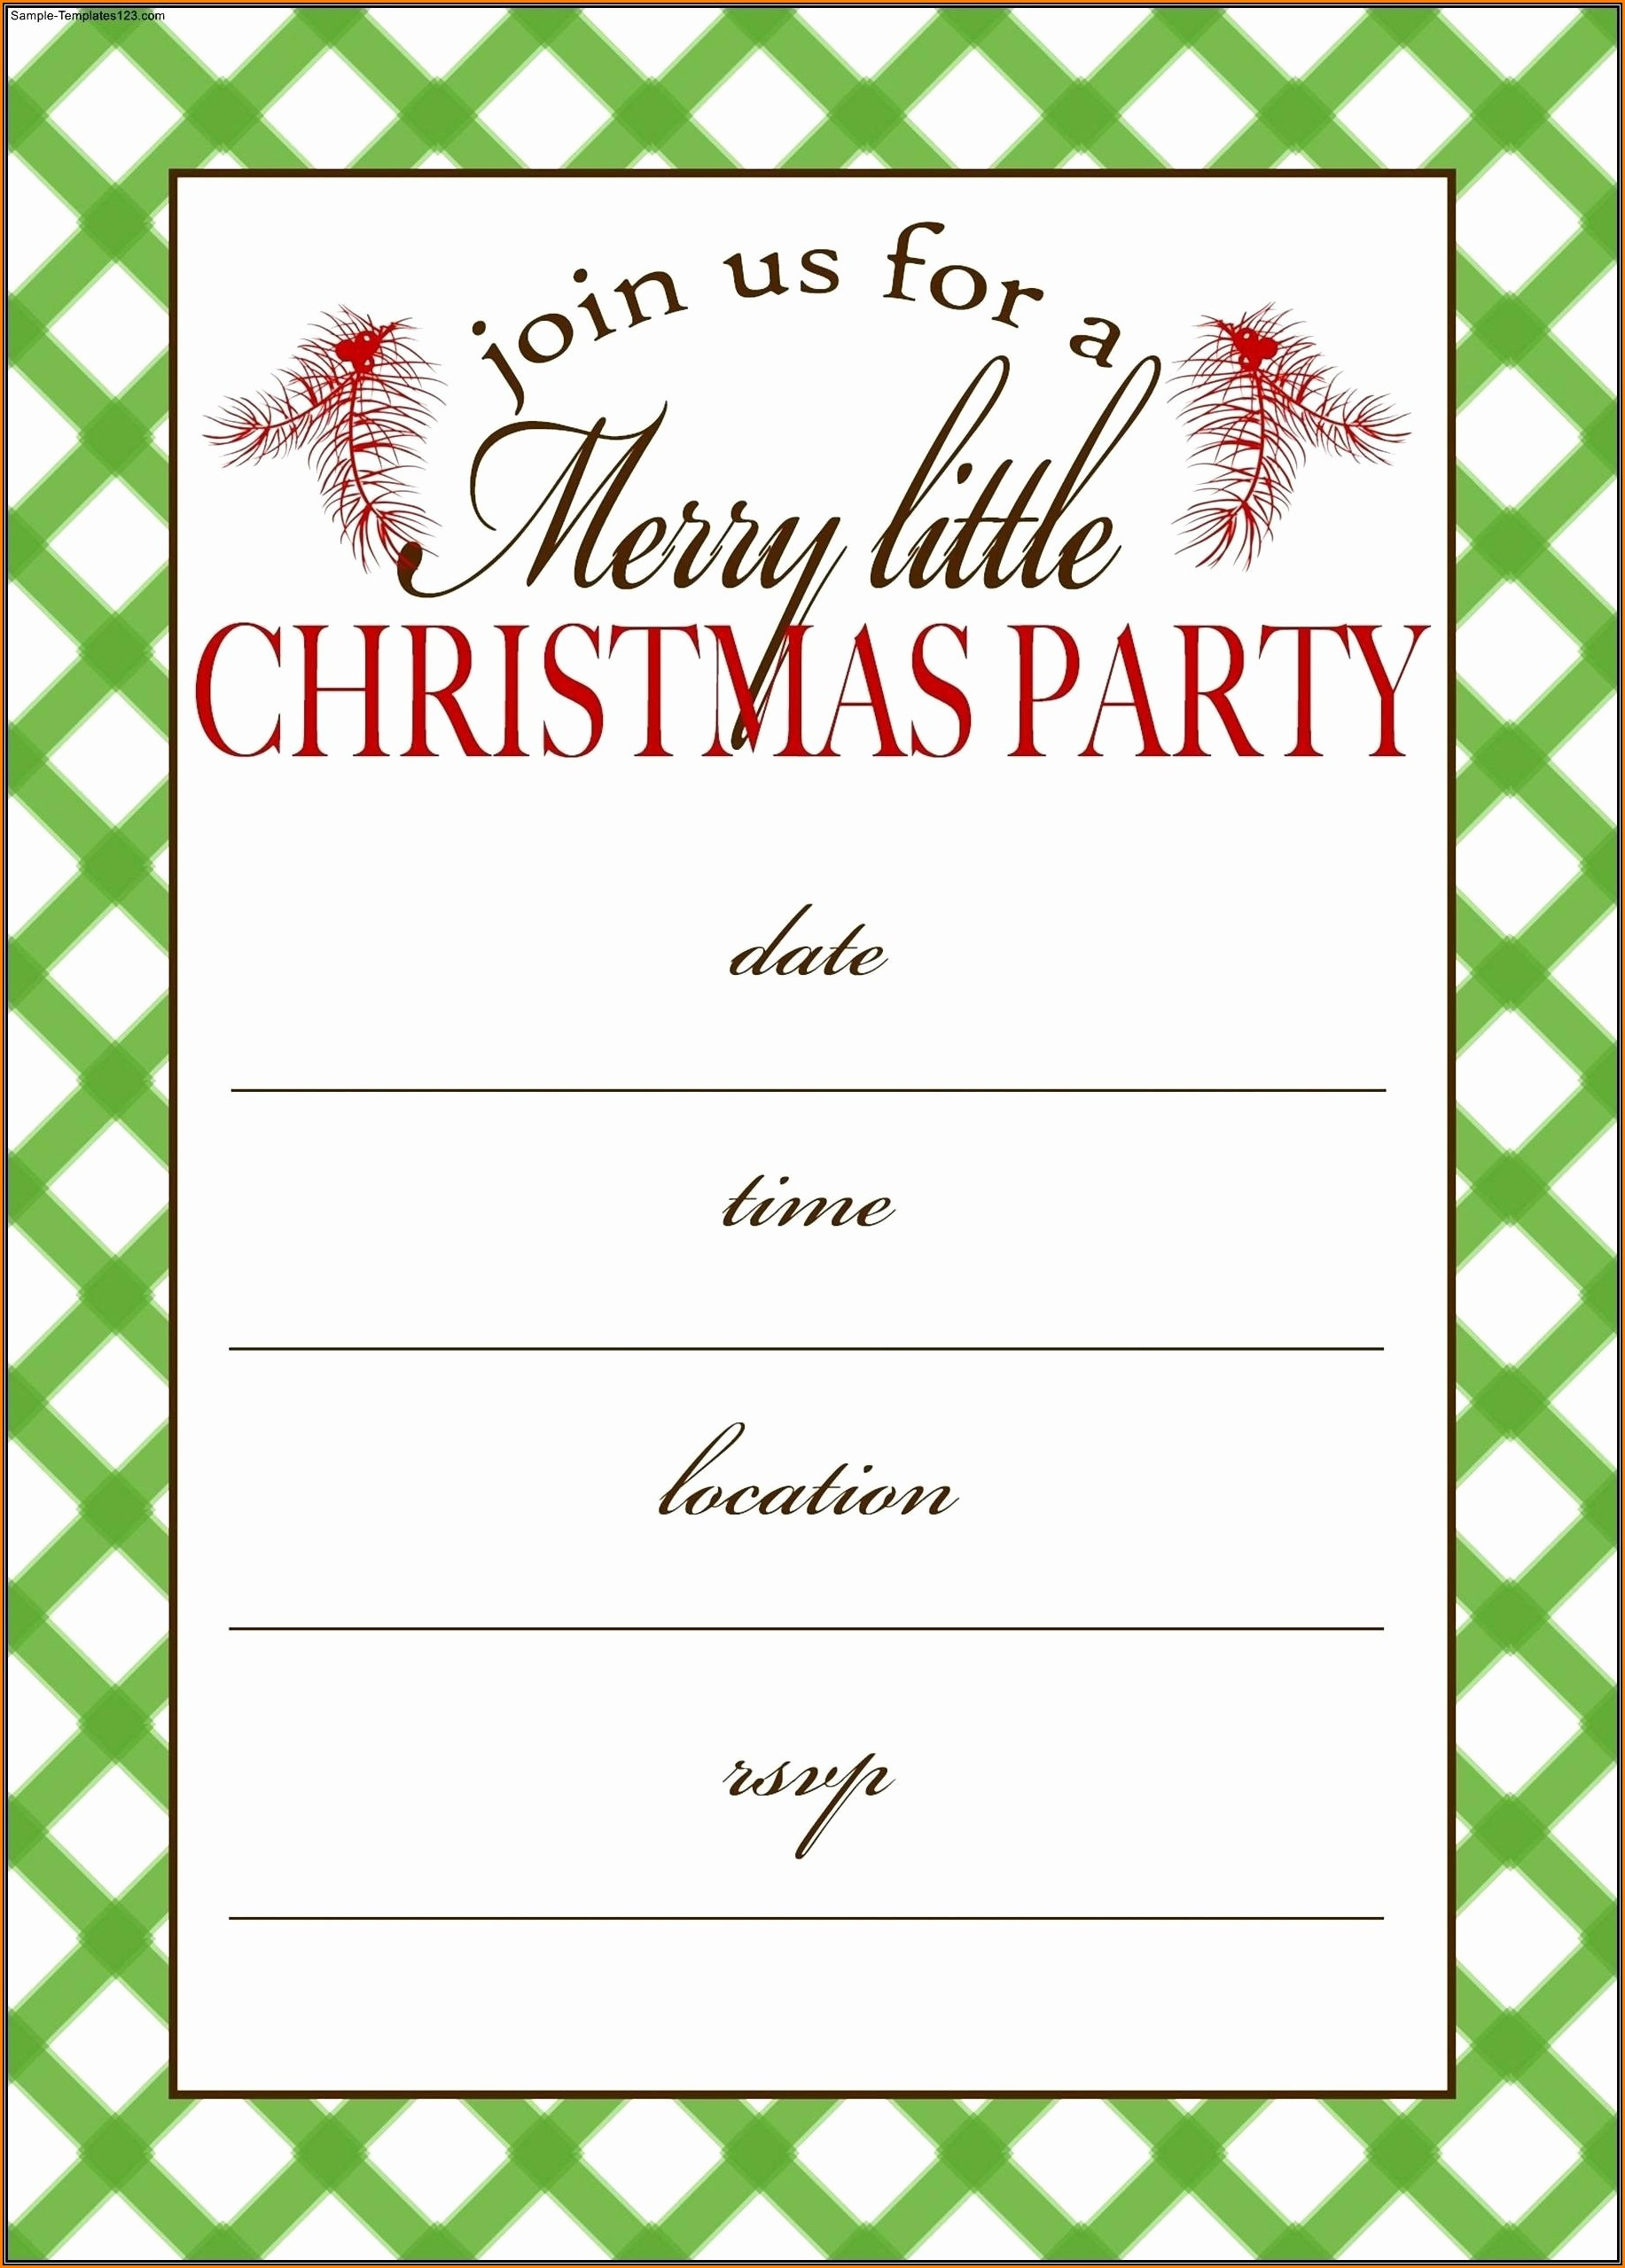 Free Editable Christmas Party Invitation Templates